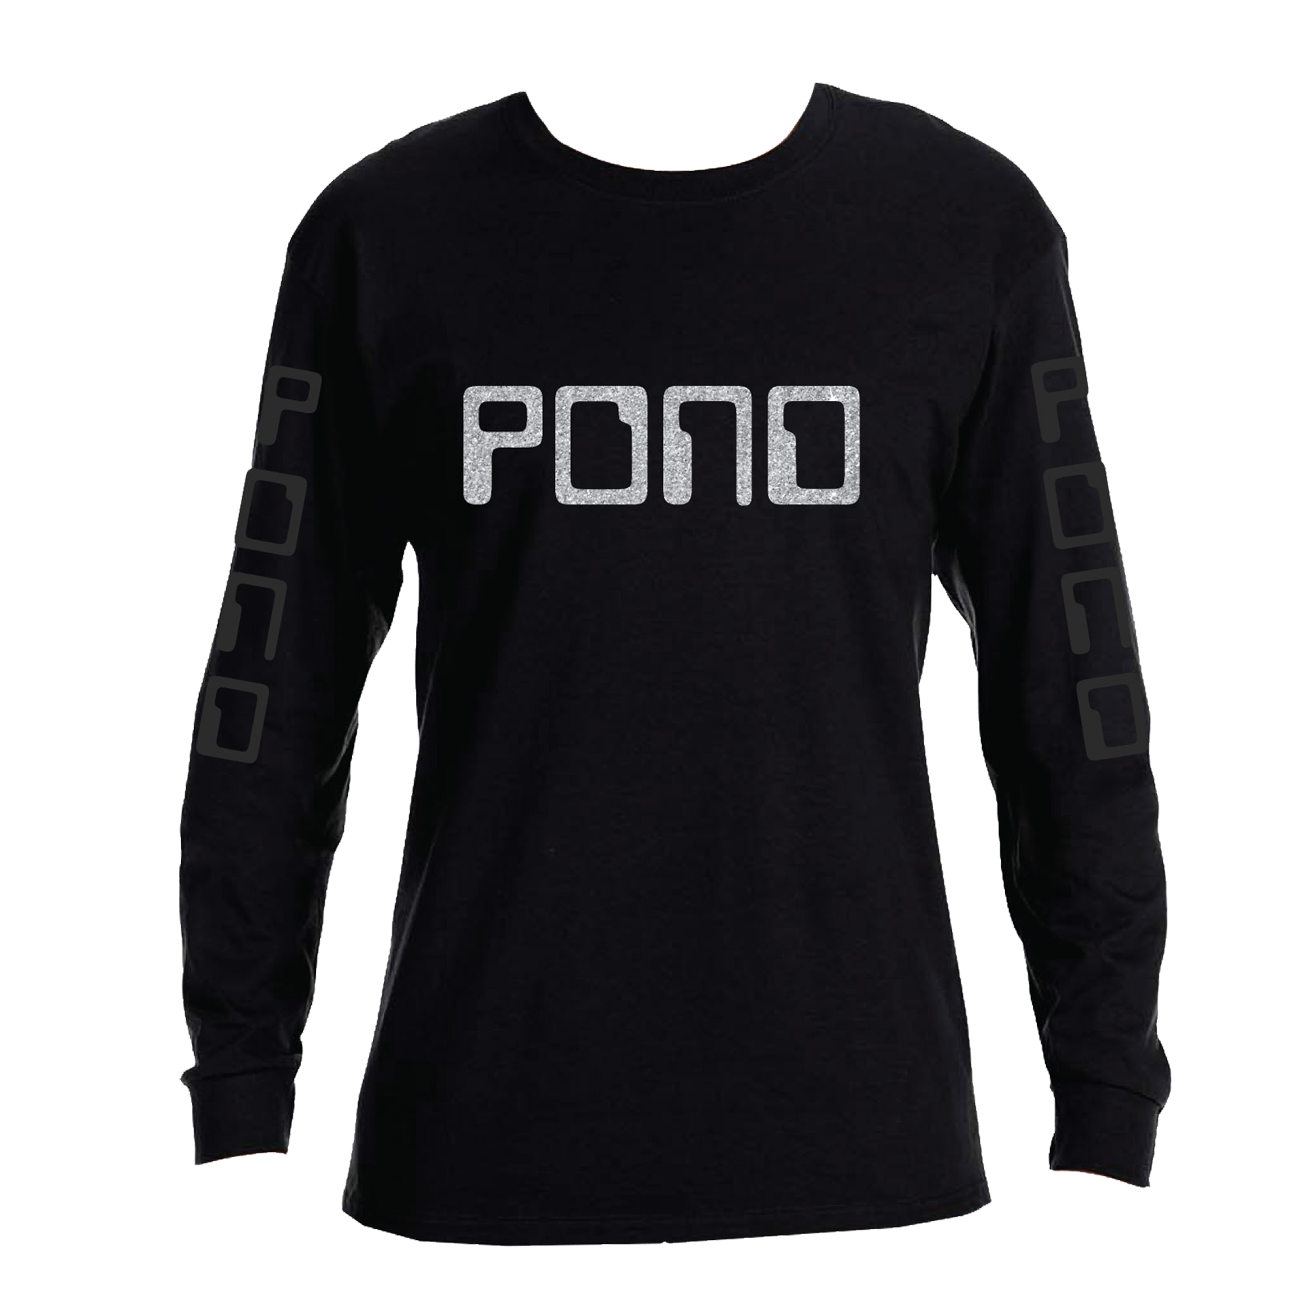 Pond Digital Longsleeve T-Shirt- Bingo Merch Official Merchandise Shop Official